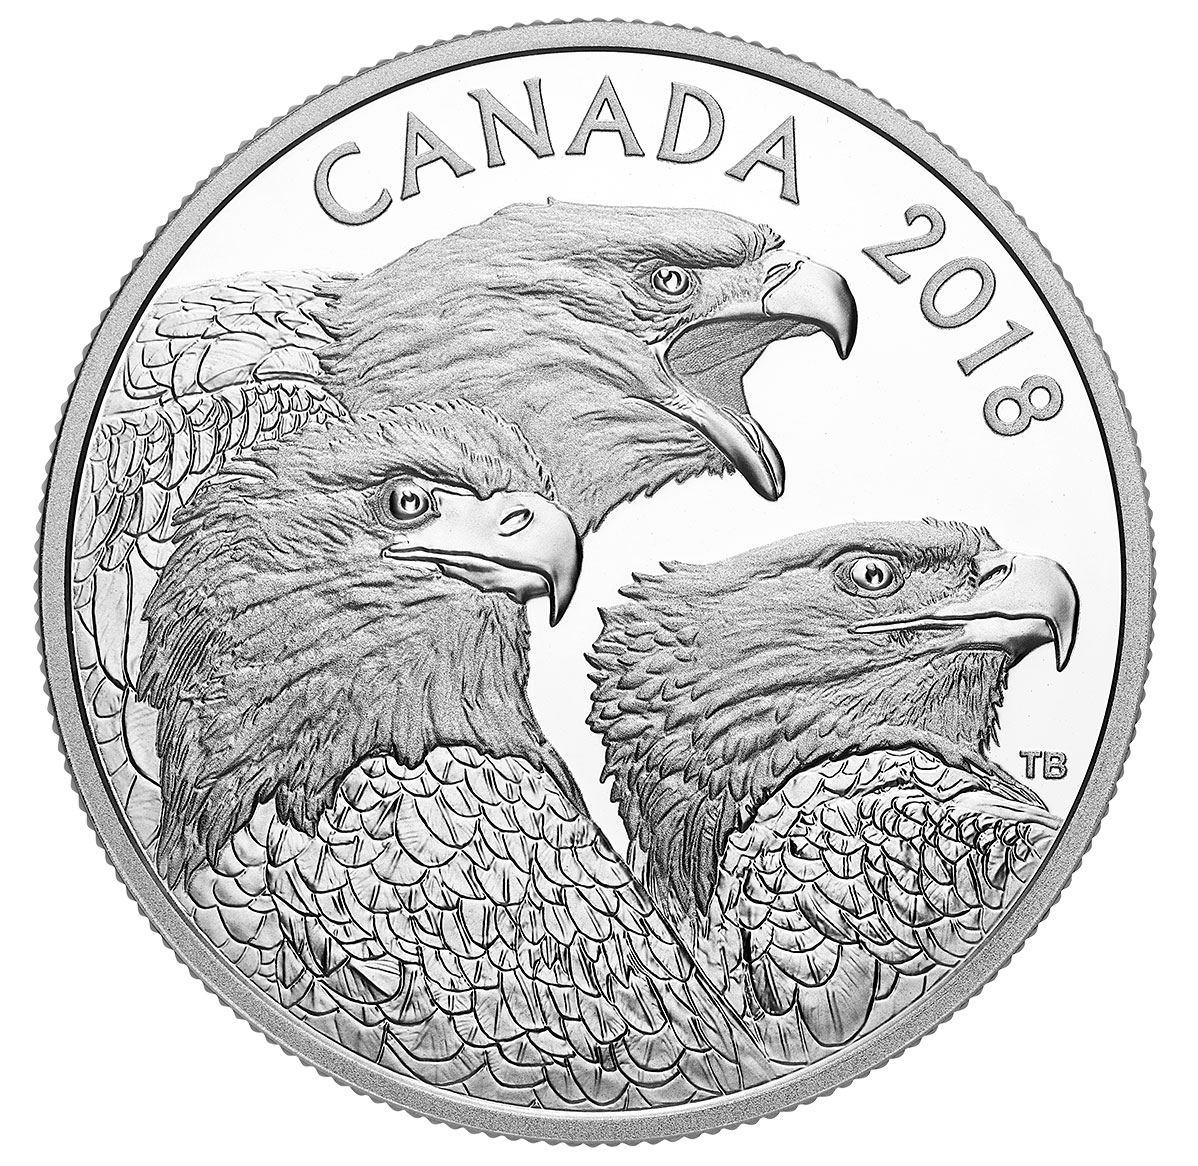 2018 Canada Magnificent Bald Eagles 1 oz Silver Proof $15 Coin GEM Proof OGP